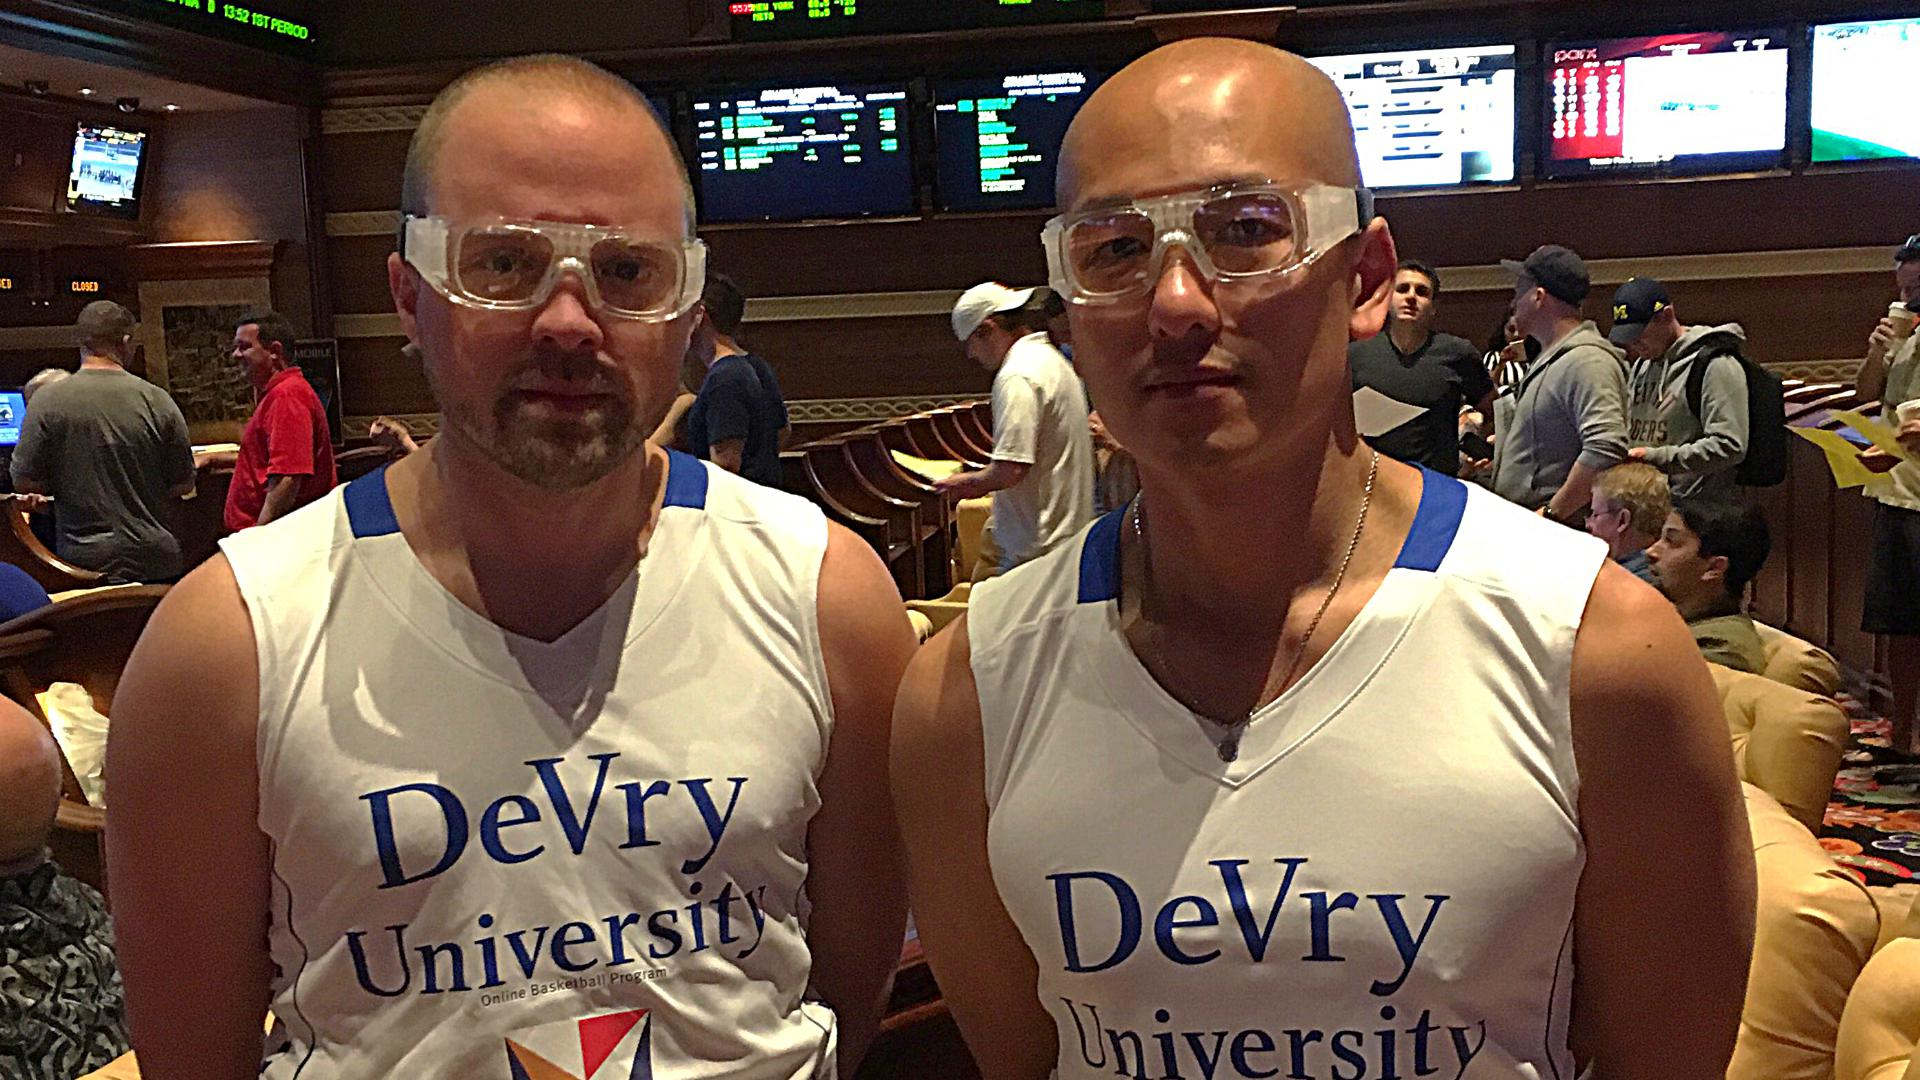 DeVry University basketball wins the 'swag' bracket